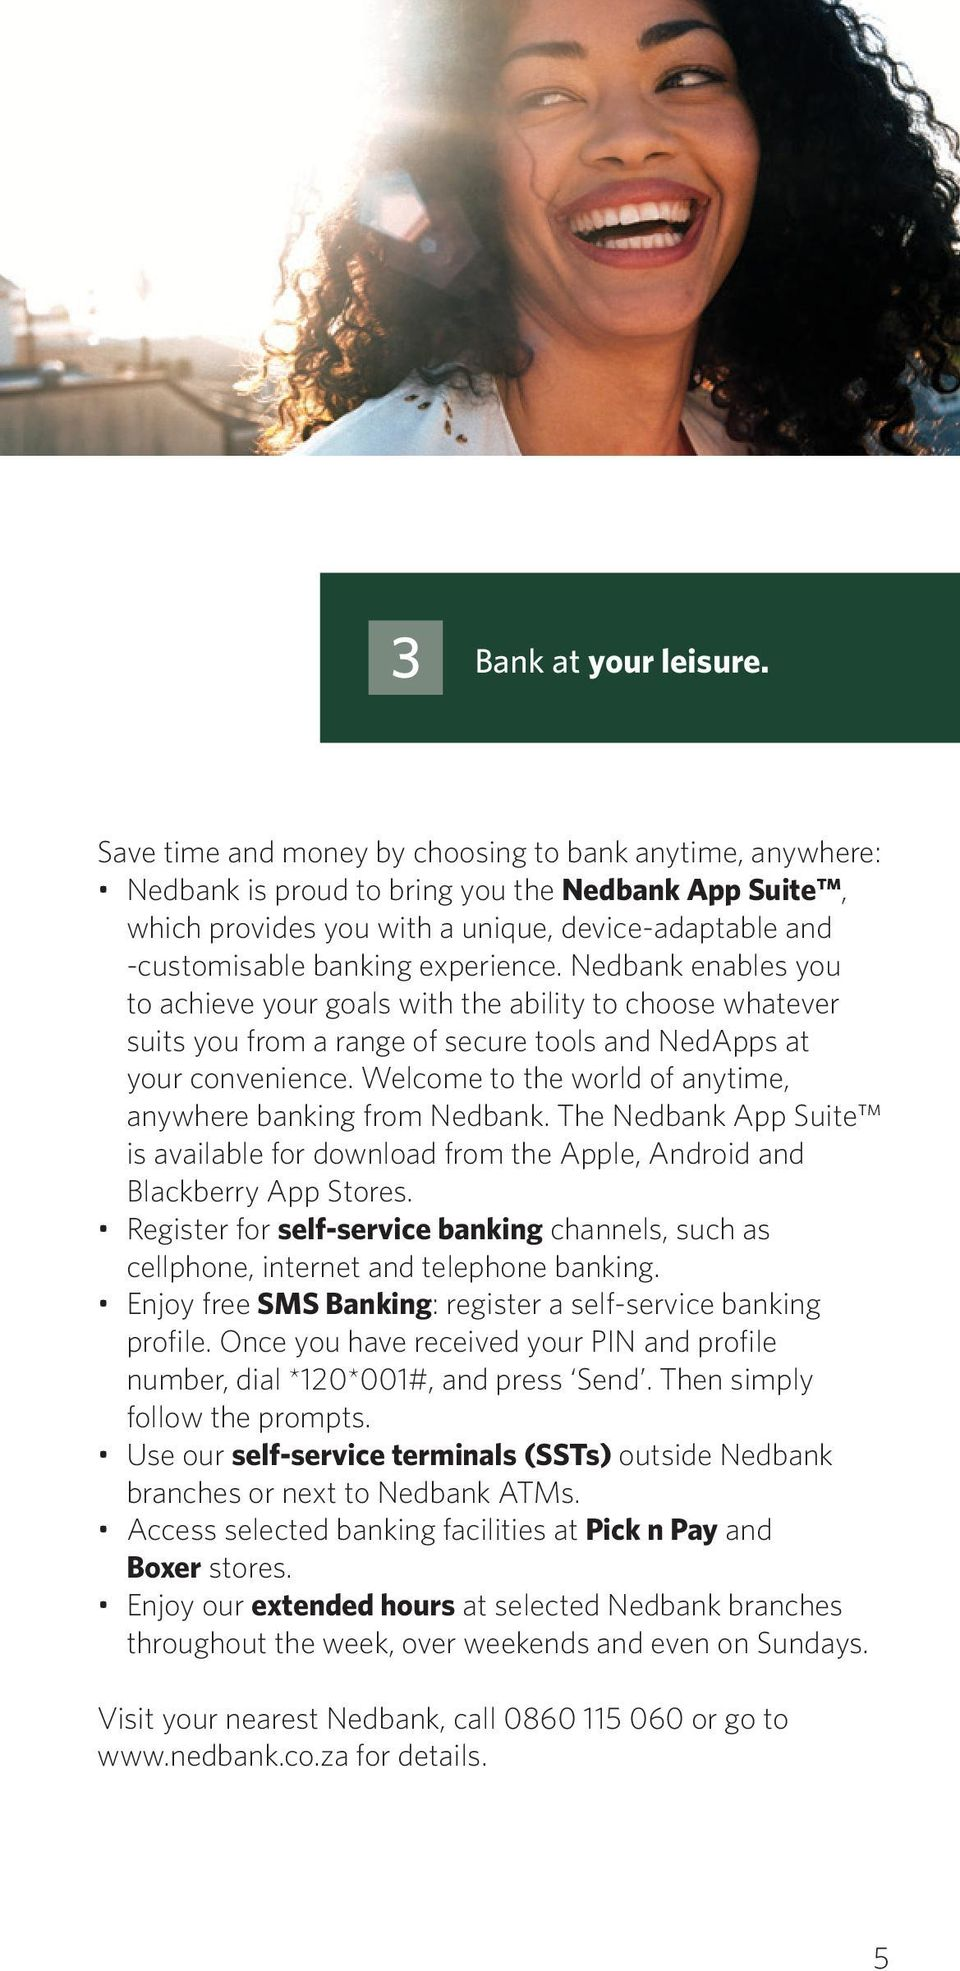 Nedbank enables you to achieve your goals with the ability to choose whatever suits you from a range of secure tools and NedApps at your convenience.